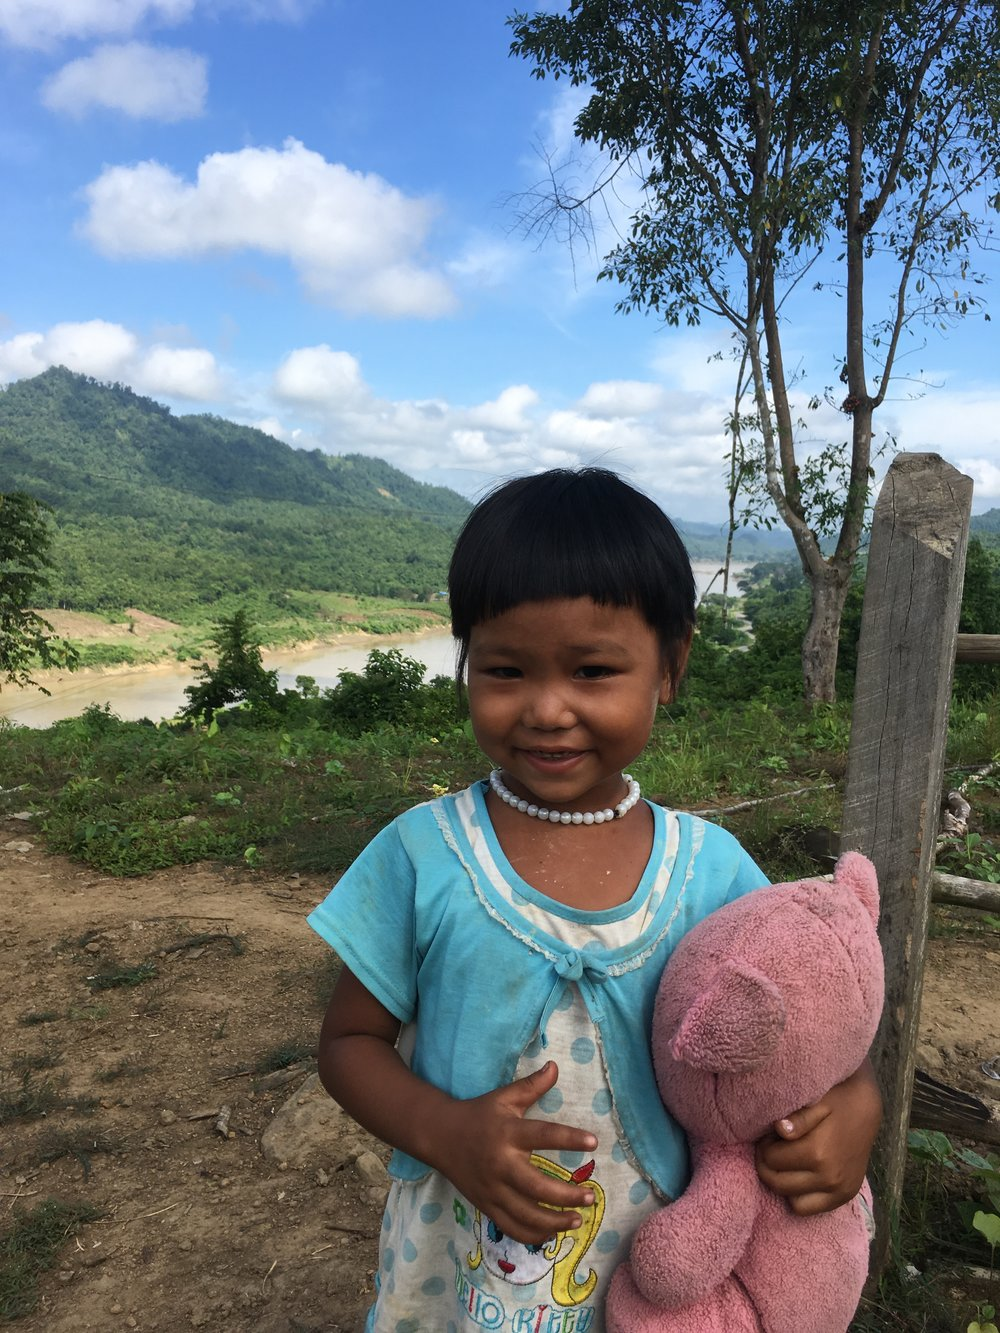 Displaced for over six months by flash floods in Myanmar's Saigang Region, this little girl and her family are one of hundreds relocated by the government to higher ground.